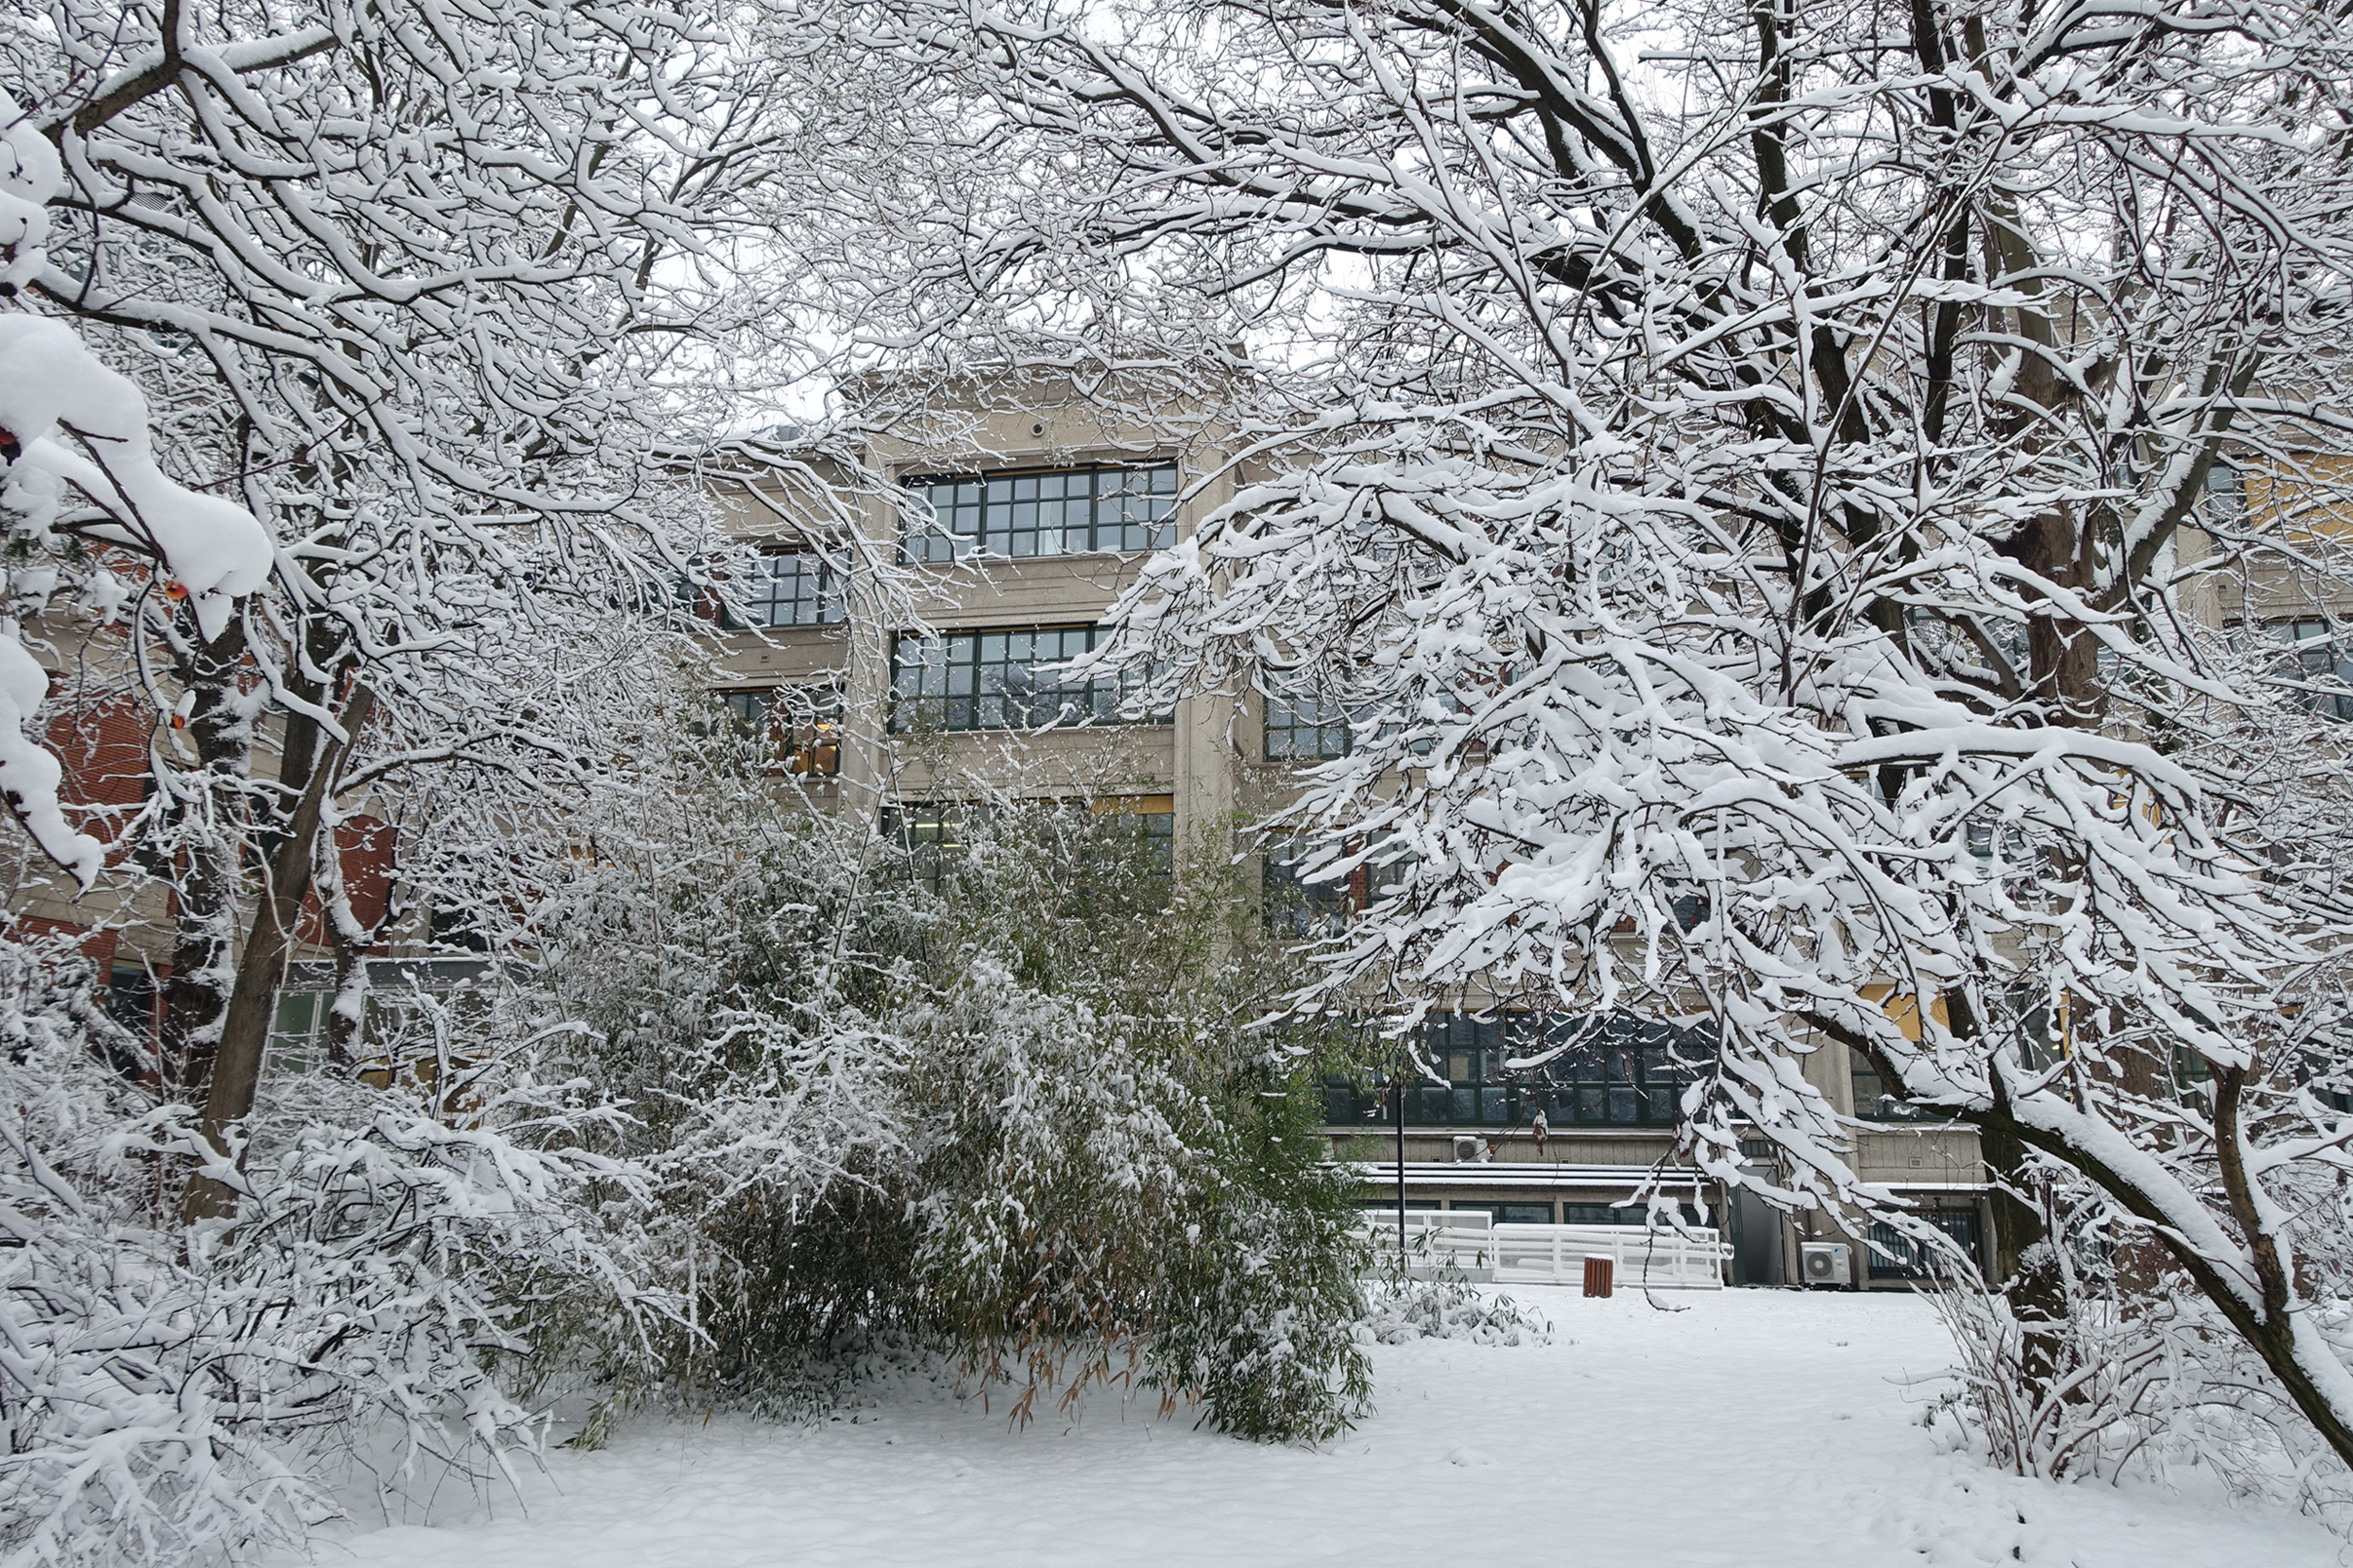 Snow on the lab and a seasonal background